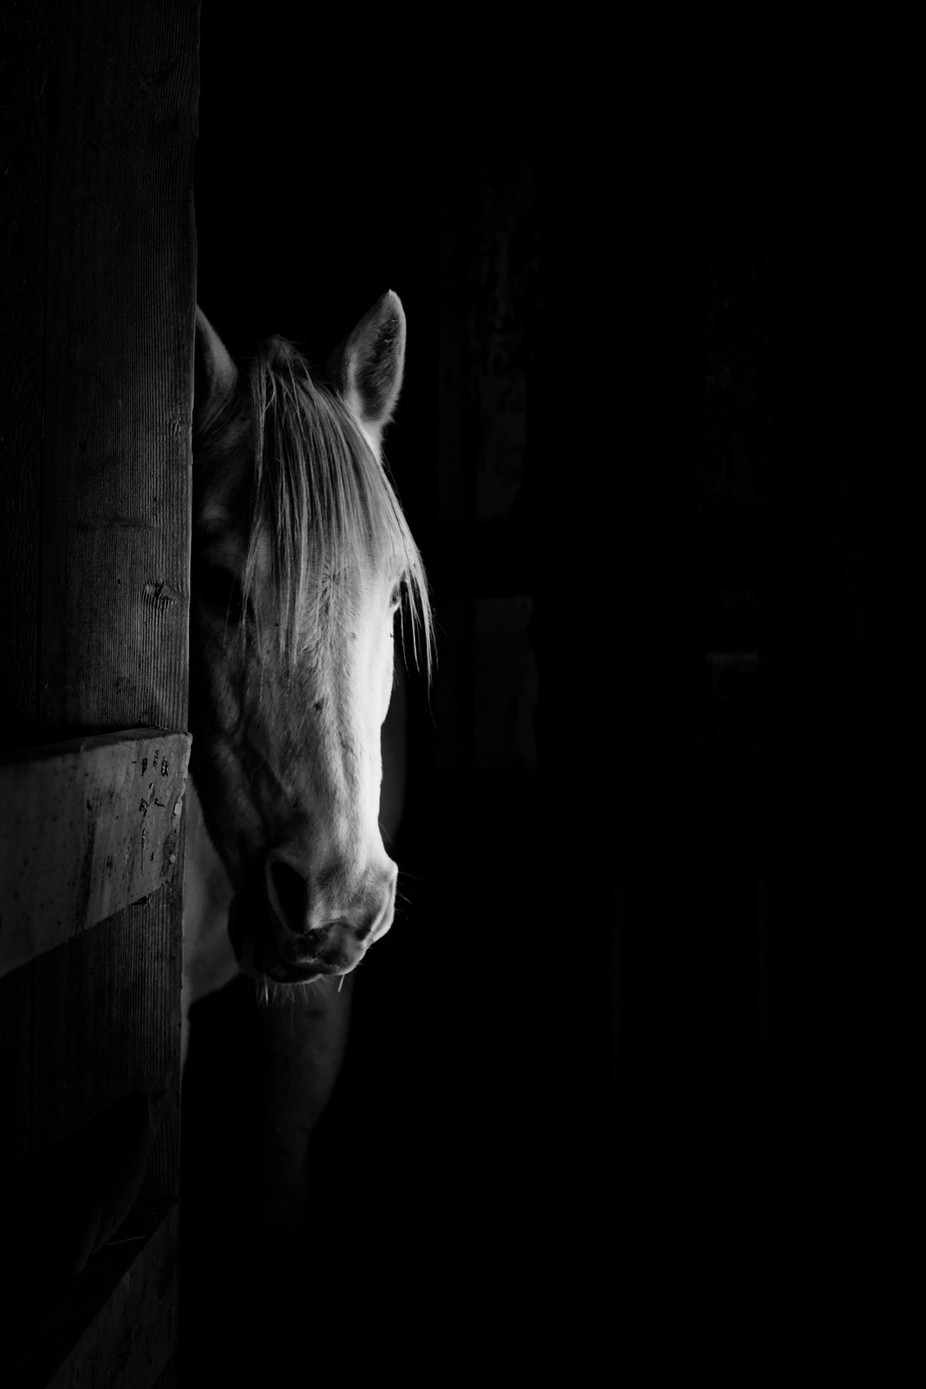 Shy by Thomas_T - Black And White Compositions Photo Contest vol3